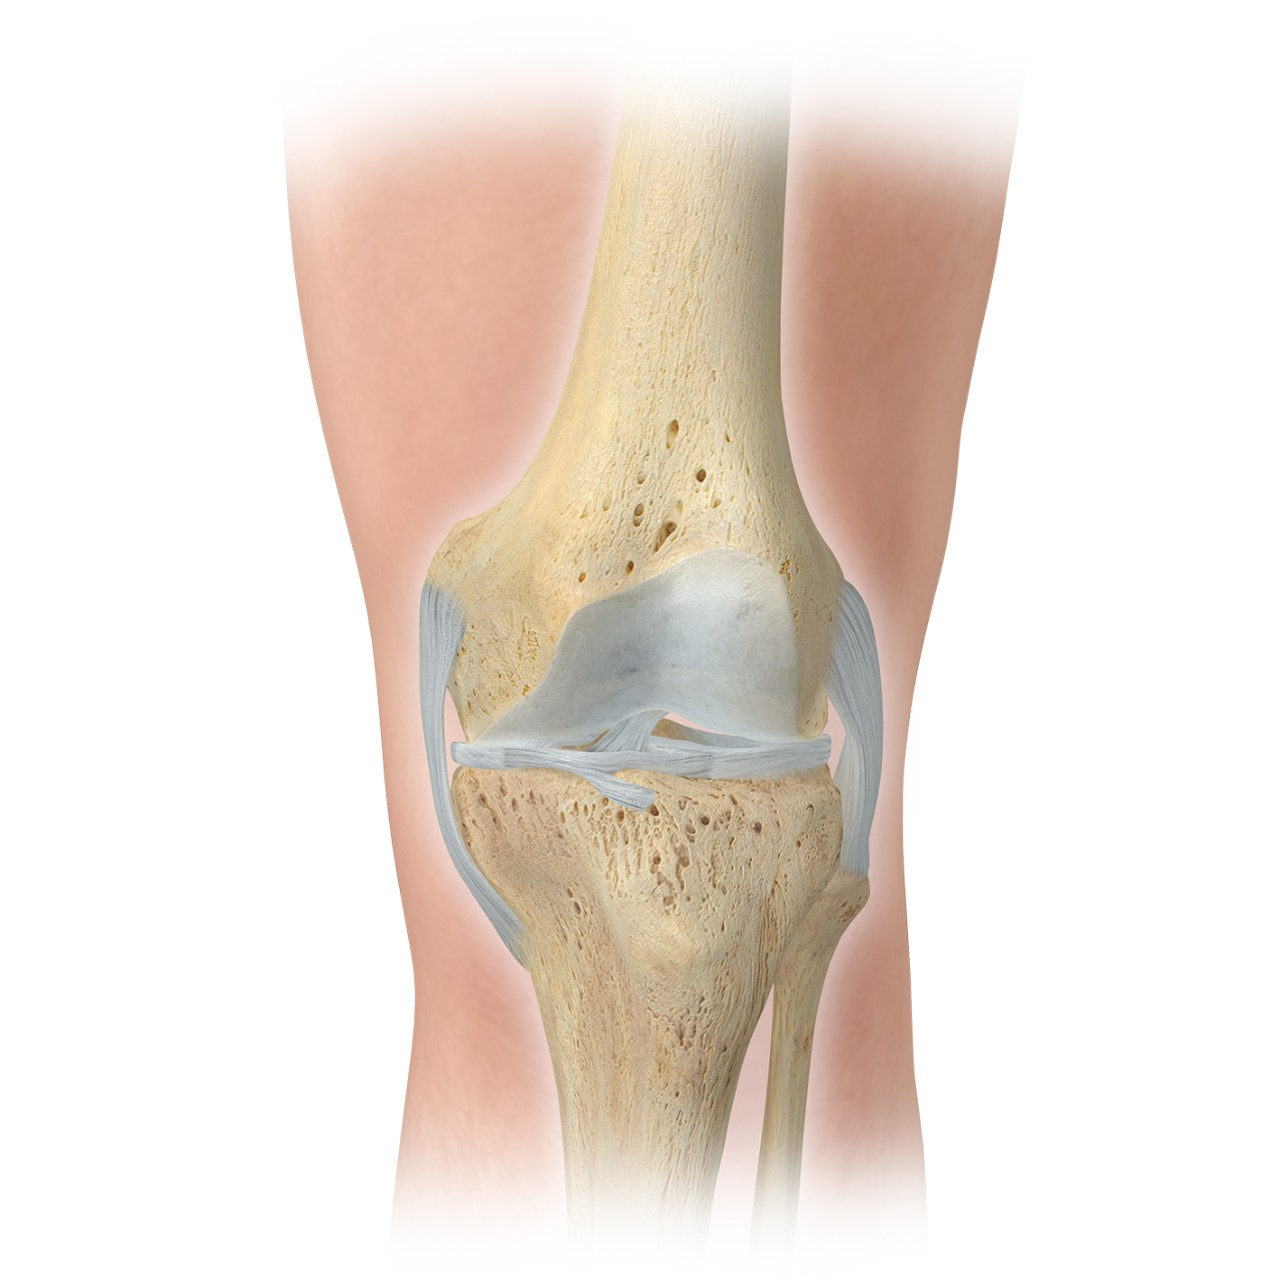 anterior knee - recovering from joint replacement surgery